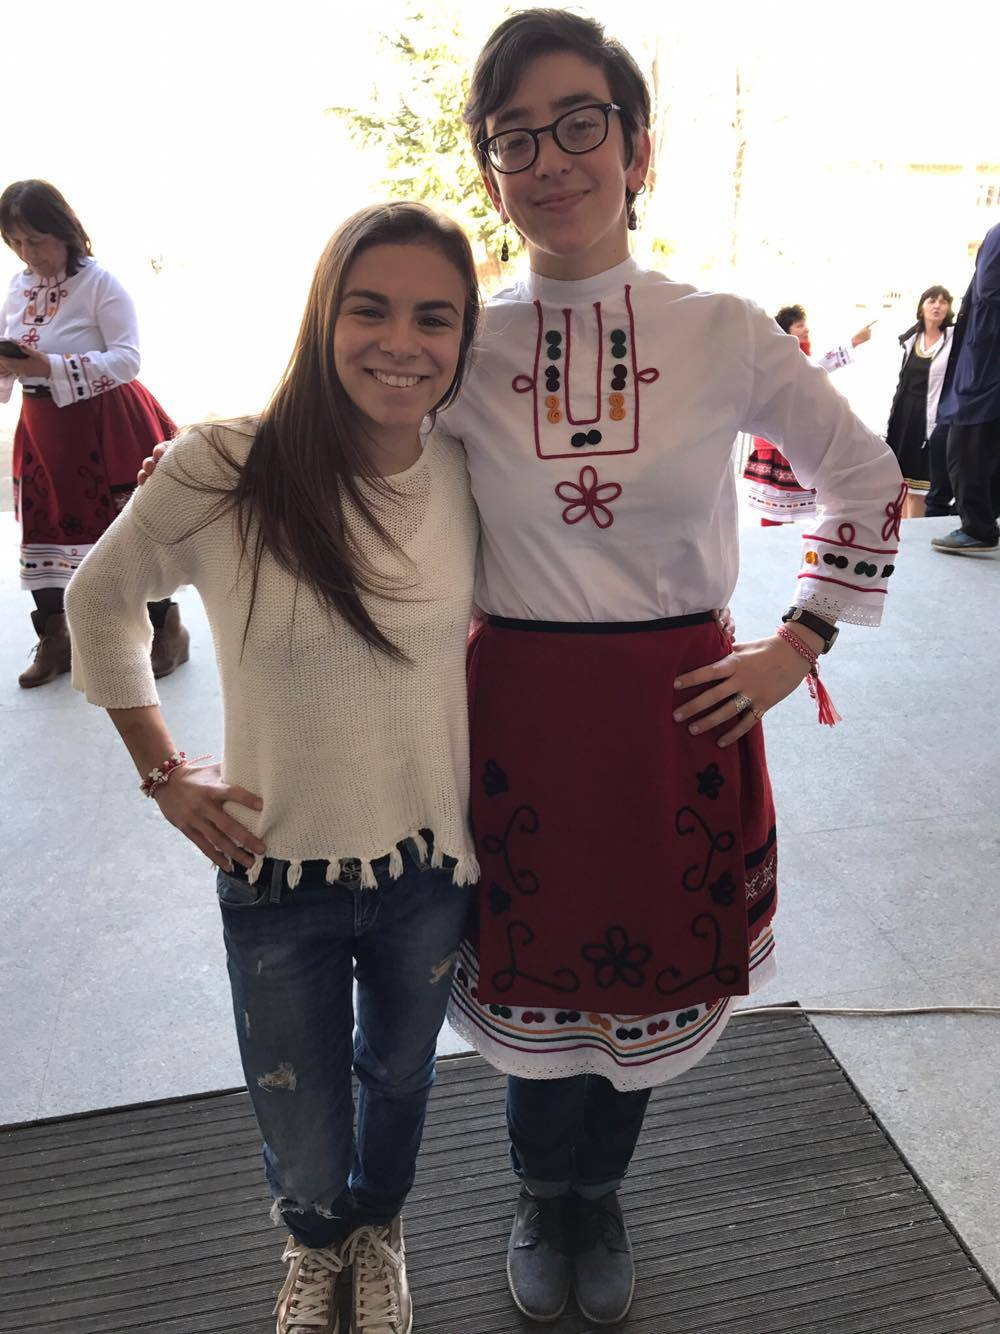 Hannah, in traditional Bulgarian dress, poses with a friend